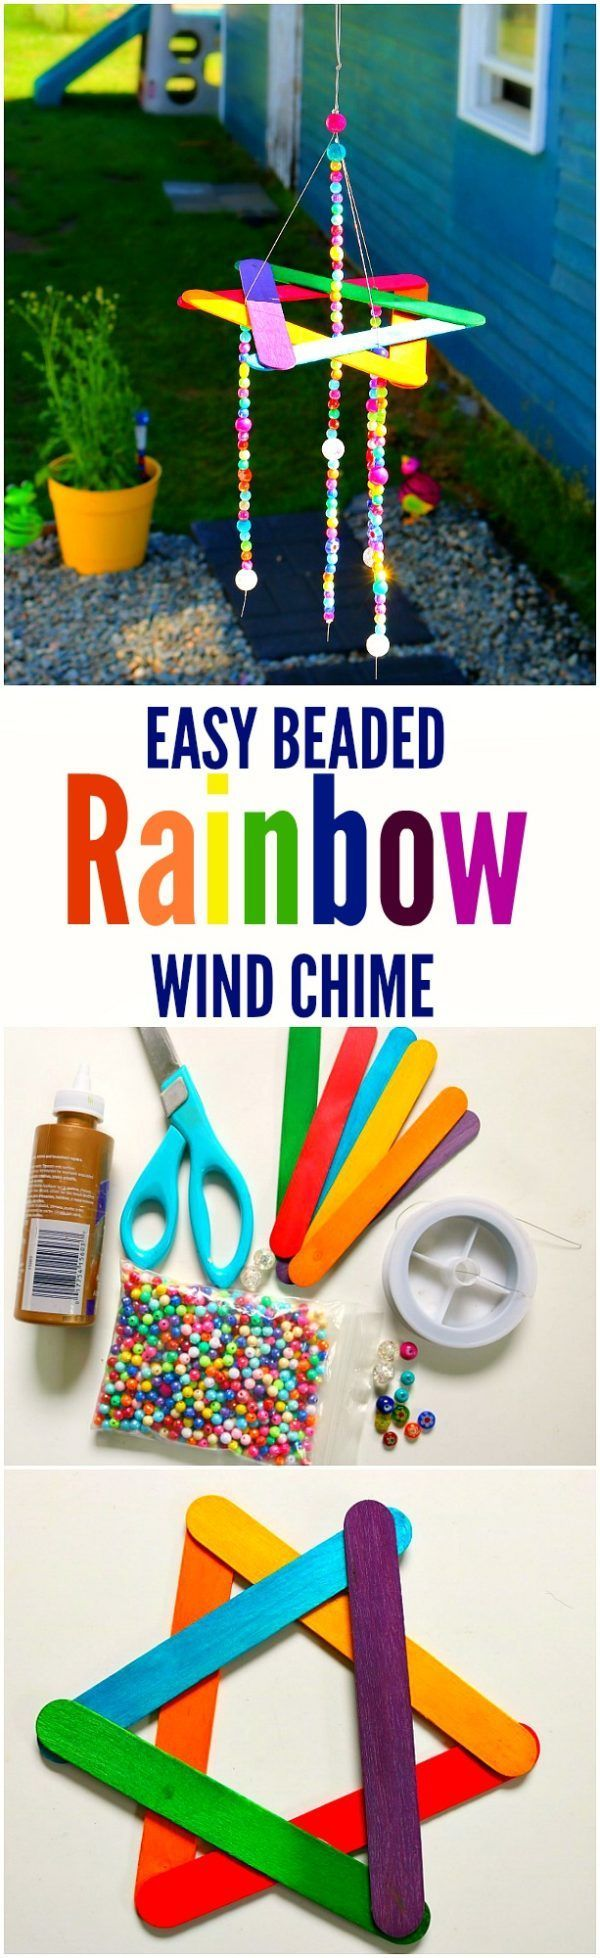 wind chime kids craft